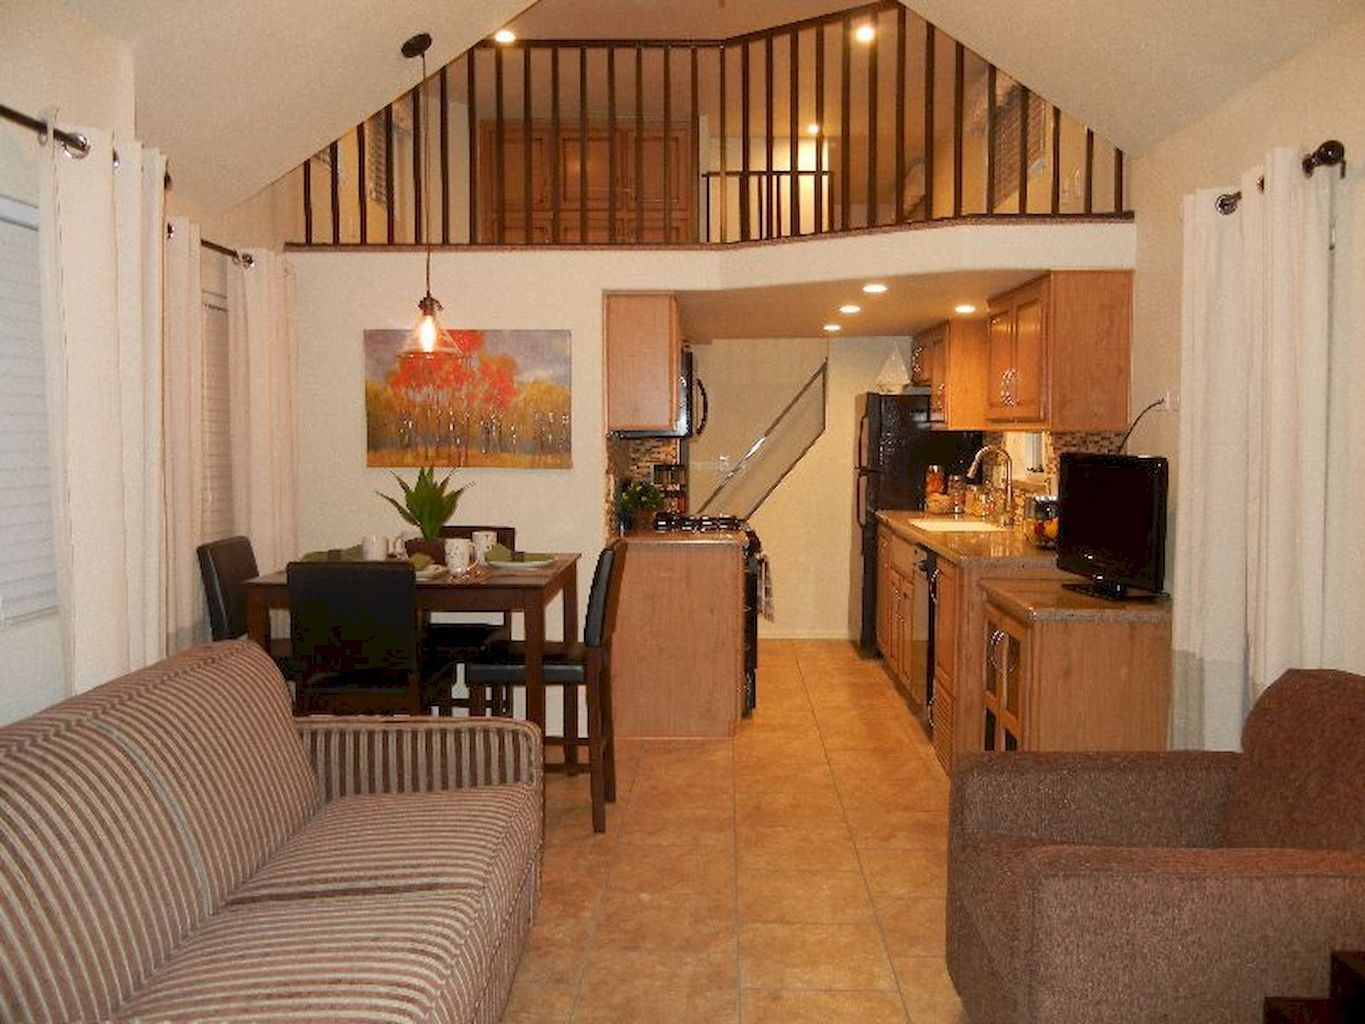 Loft bedroom no door   amazing loft stair for tiny house ideas  Trains planes and